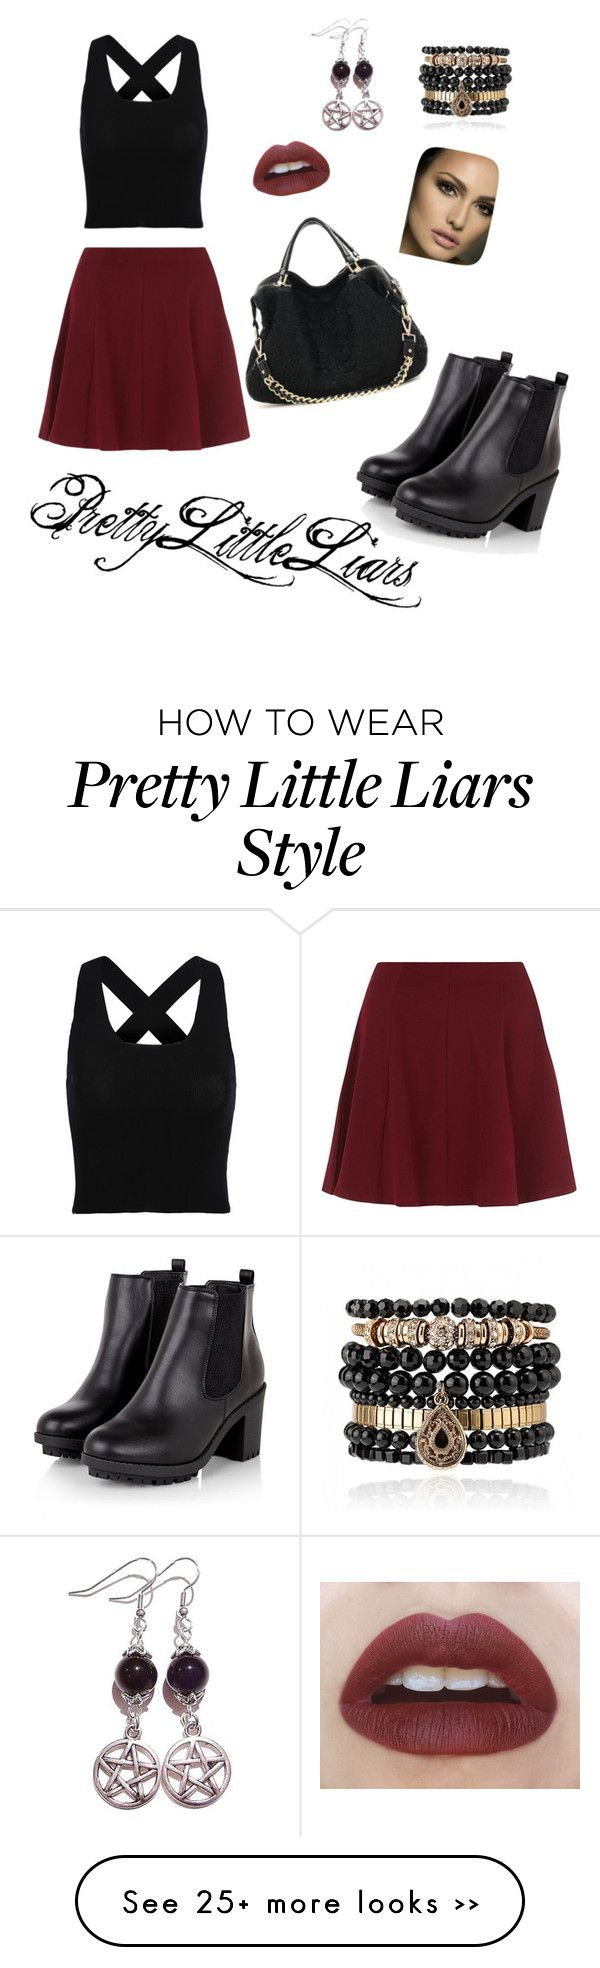 """""""Pretty Little Liars Aria Montgomery inspired"""" by chxlseaa on Polyvore featuring Samantha Wills"""